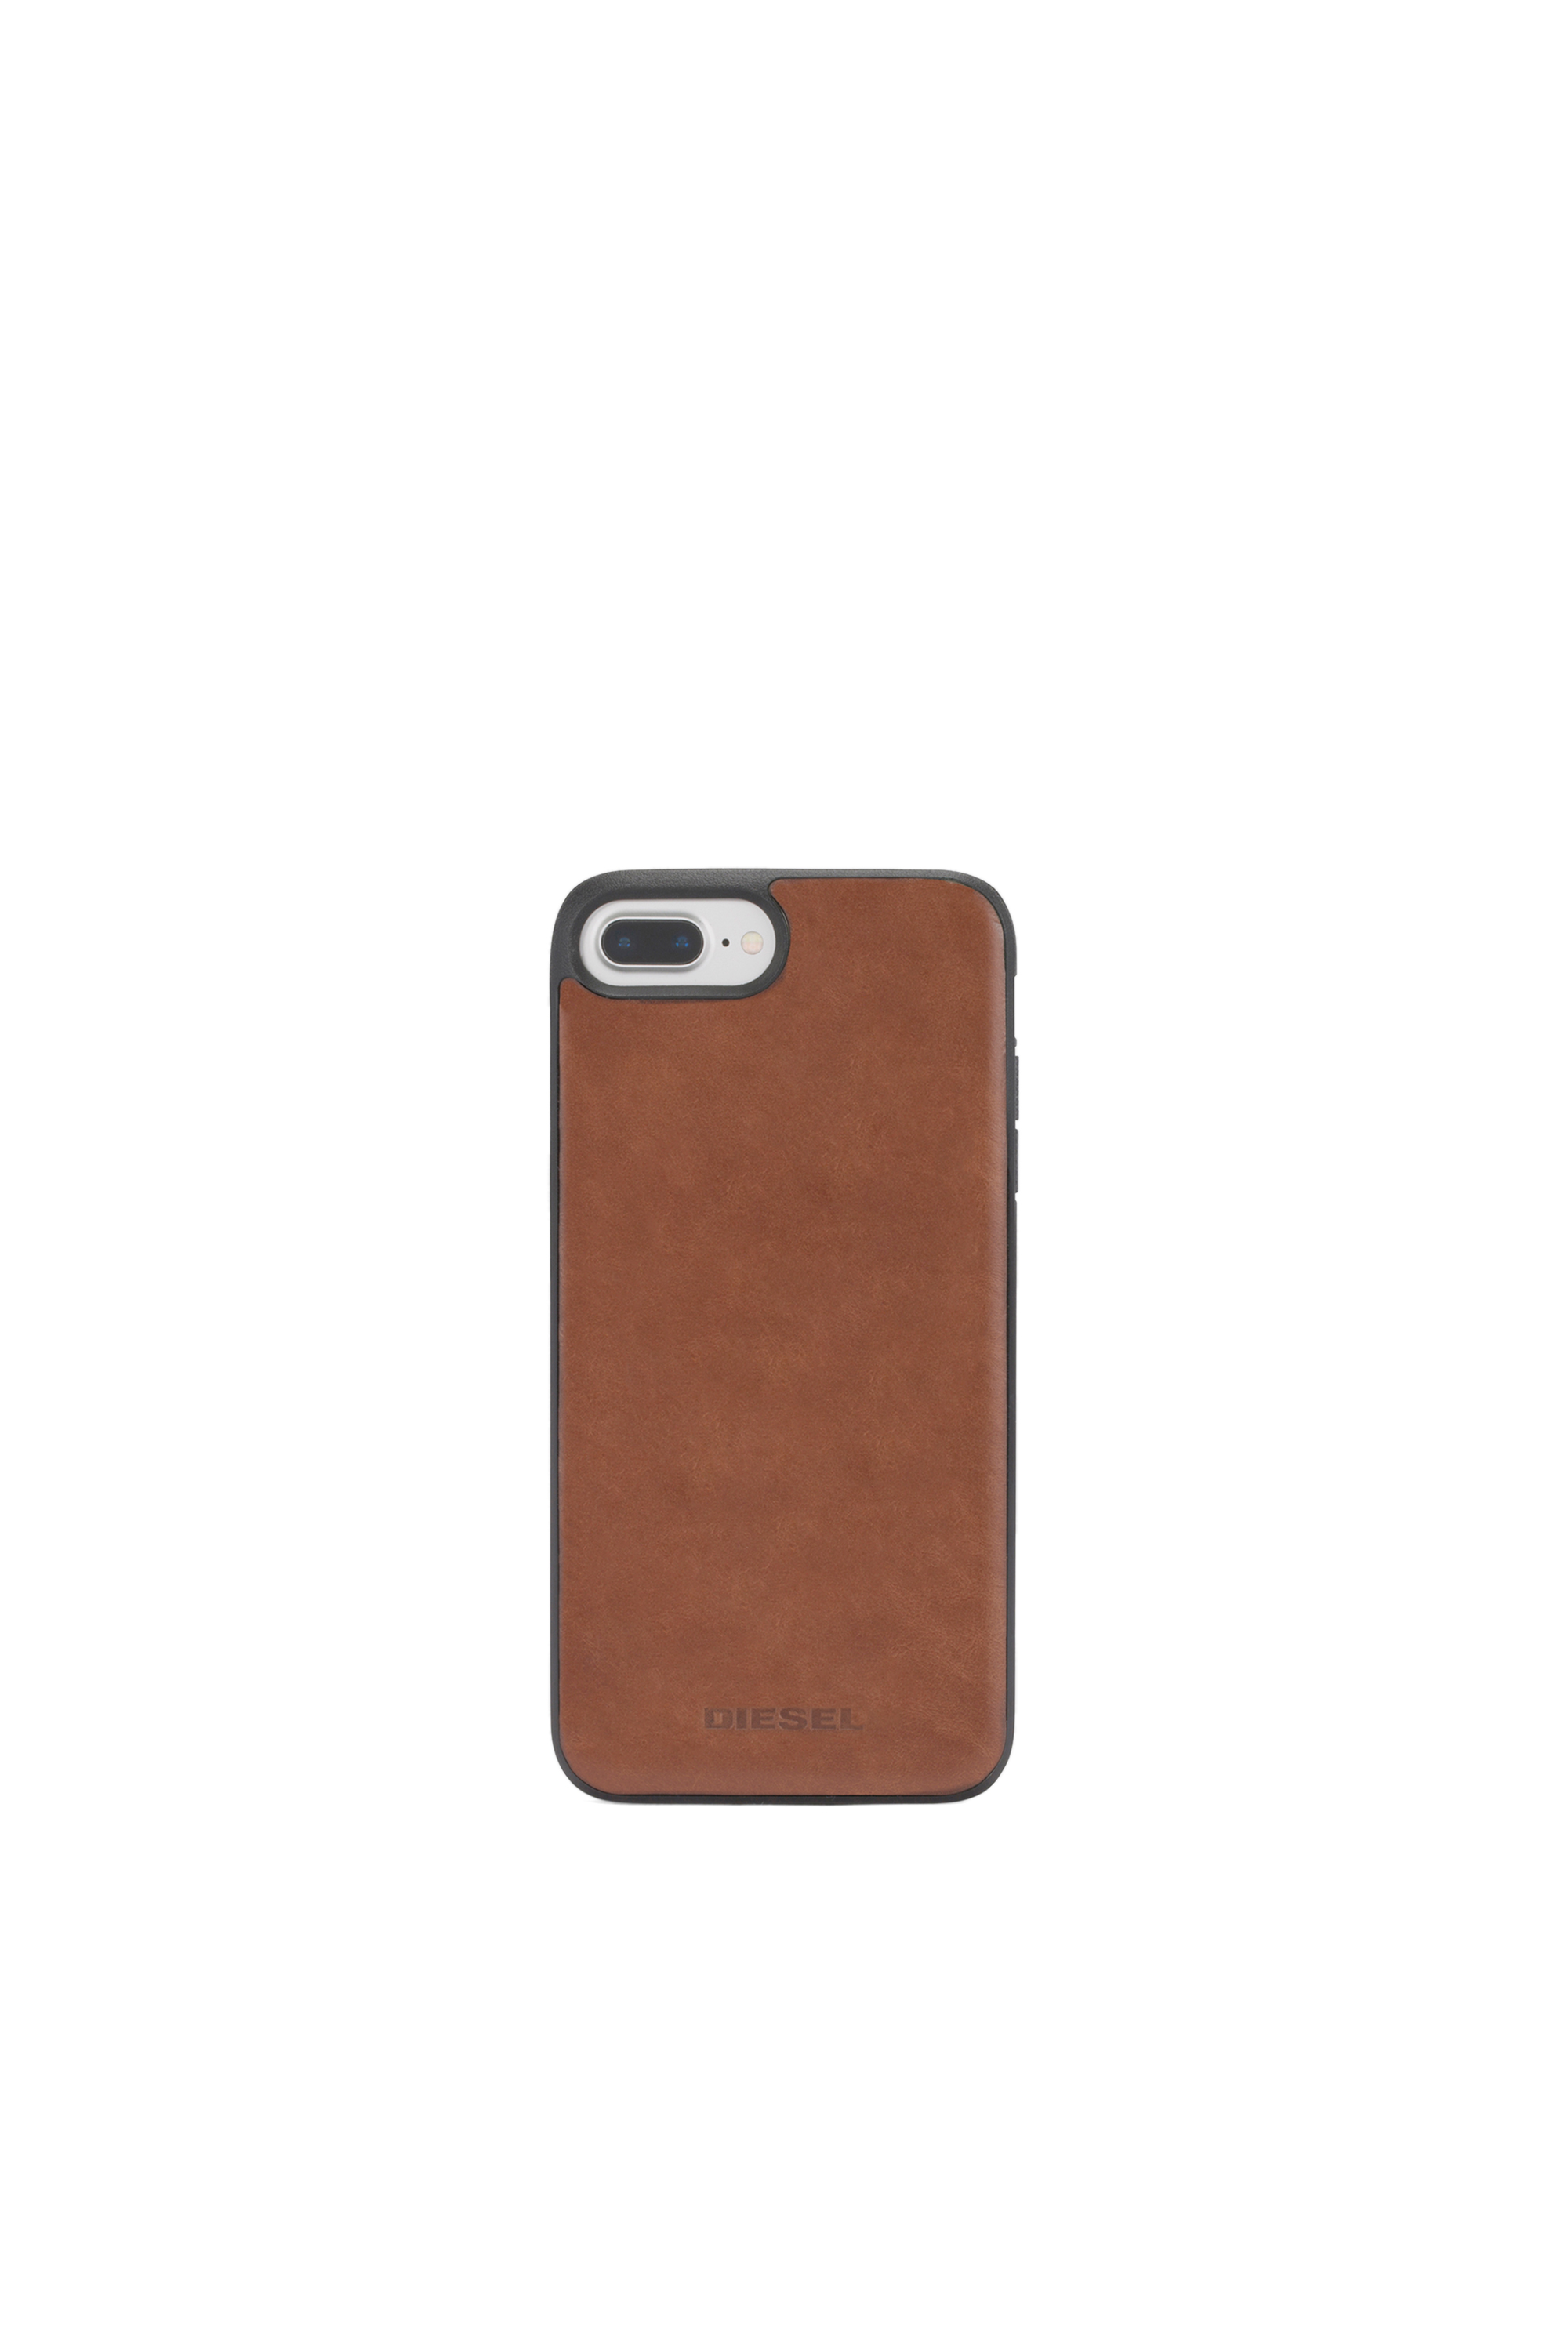 Diesel - BROWN LEATHER IPHONE X CASE,  - Schutzhüllen - Image 4